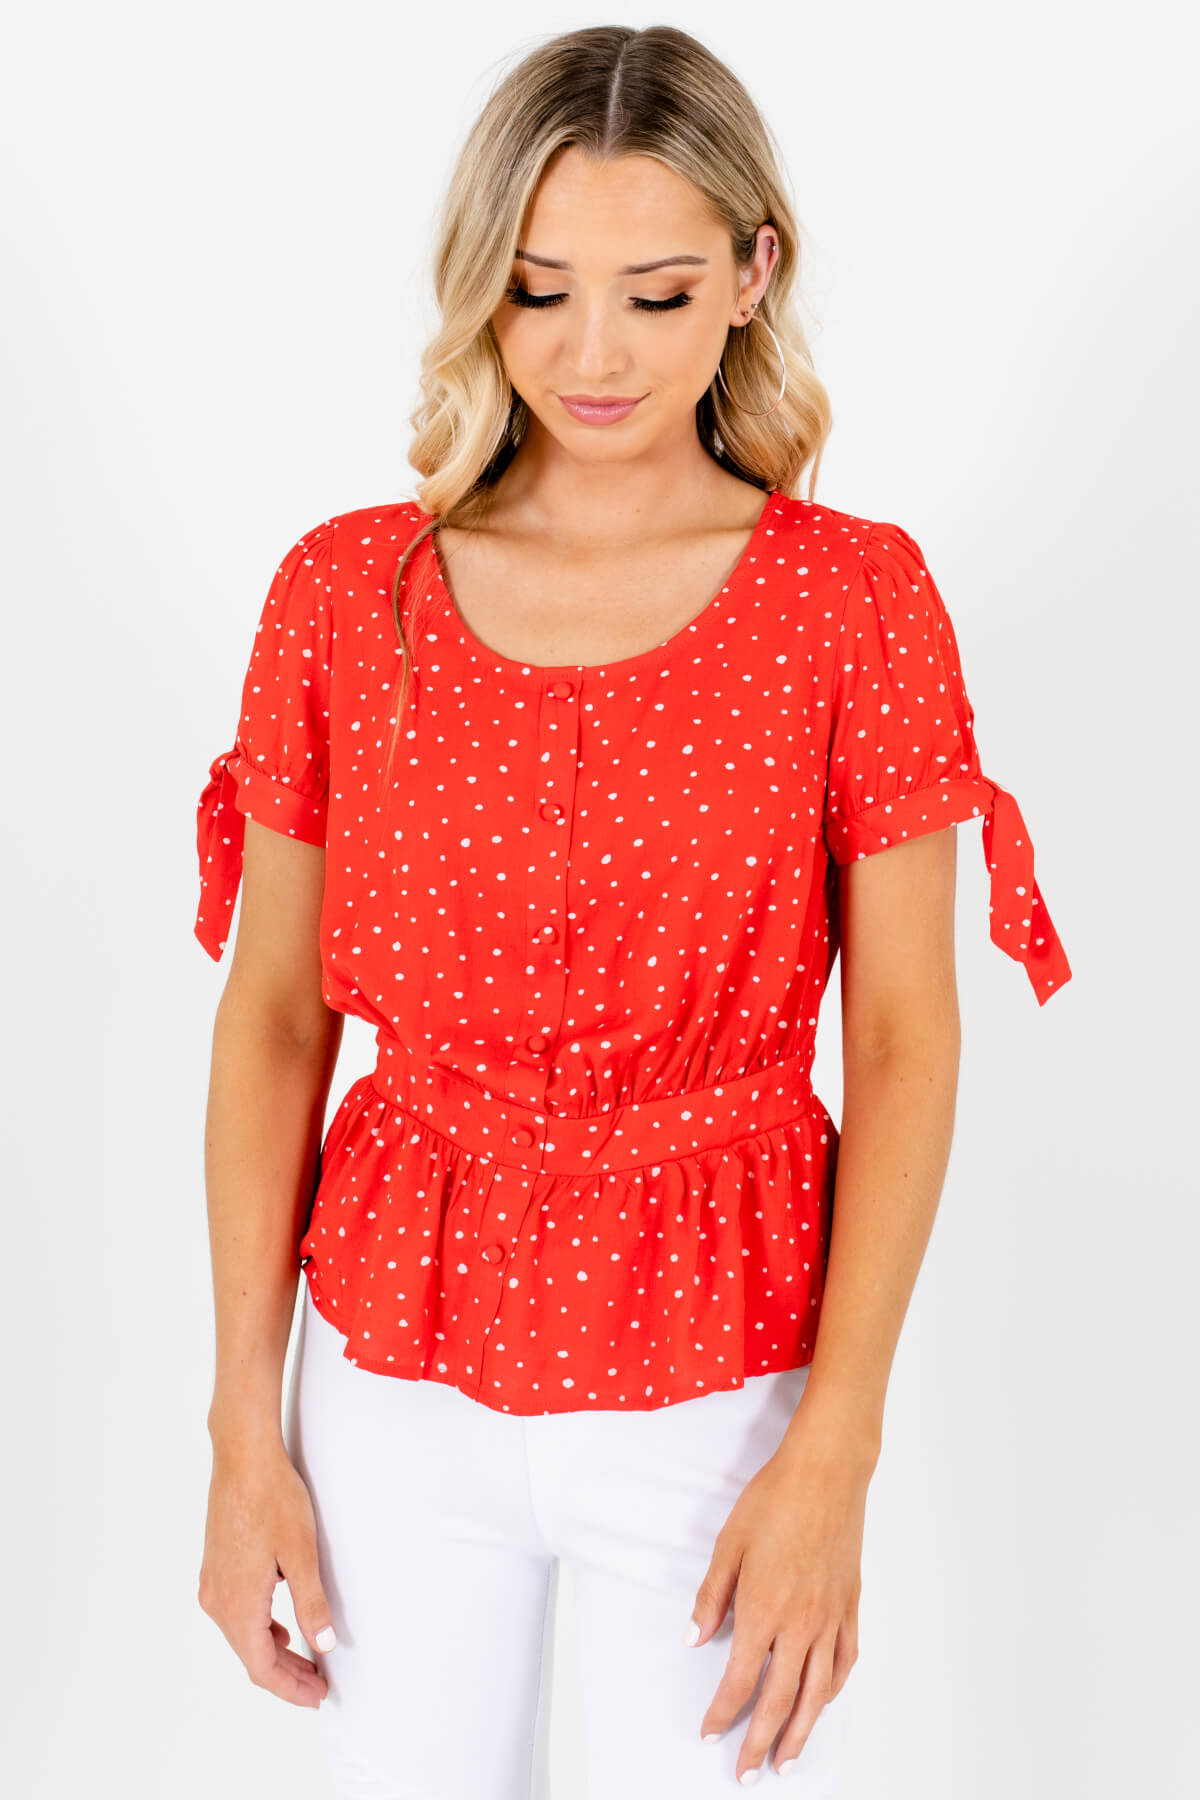 Red and White Polka Dot Patterned Boutique Tops for Women